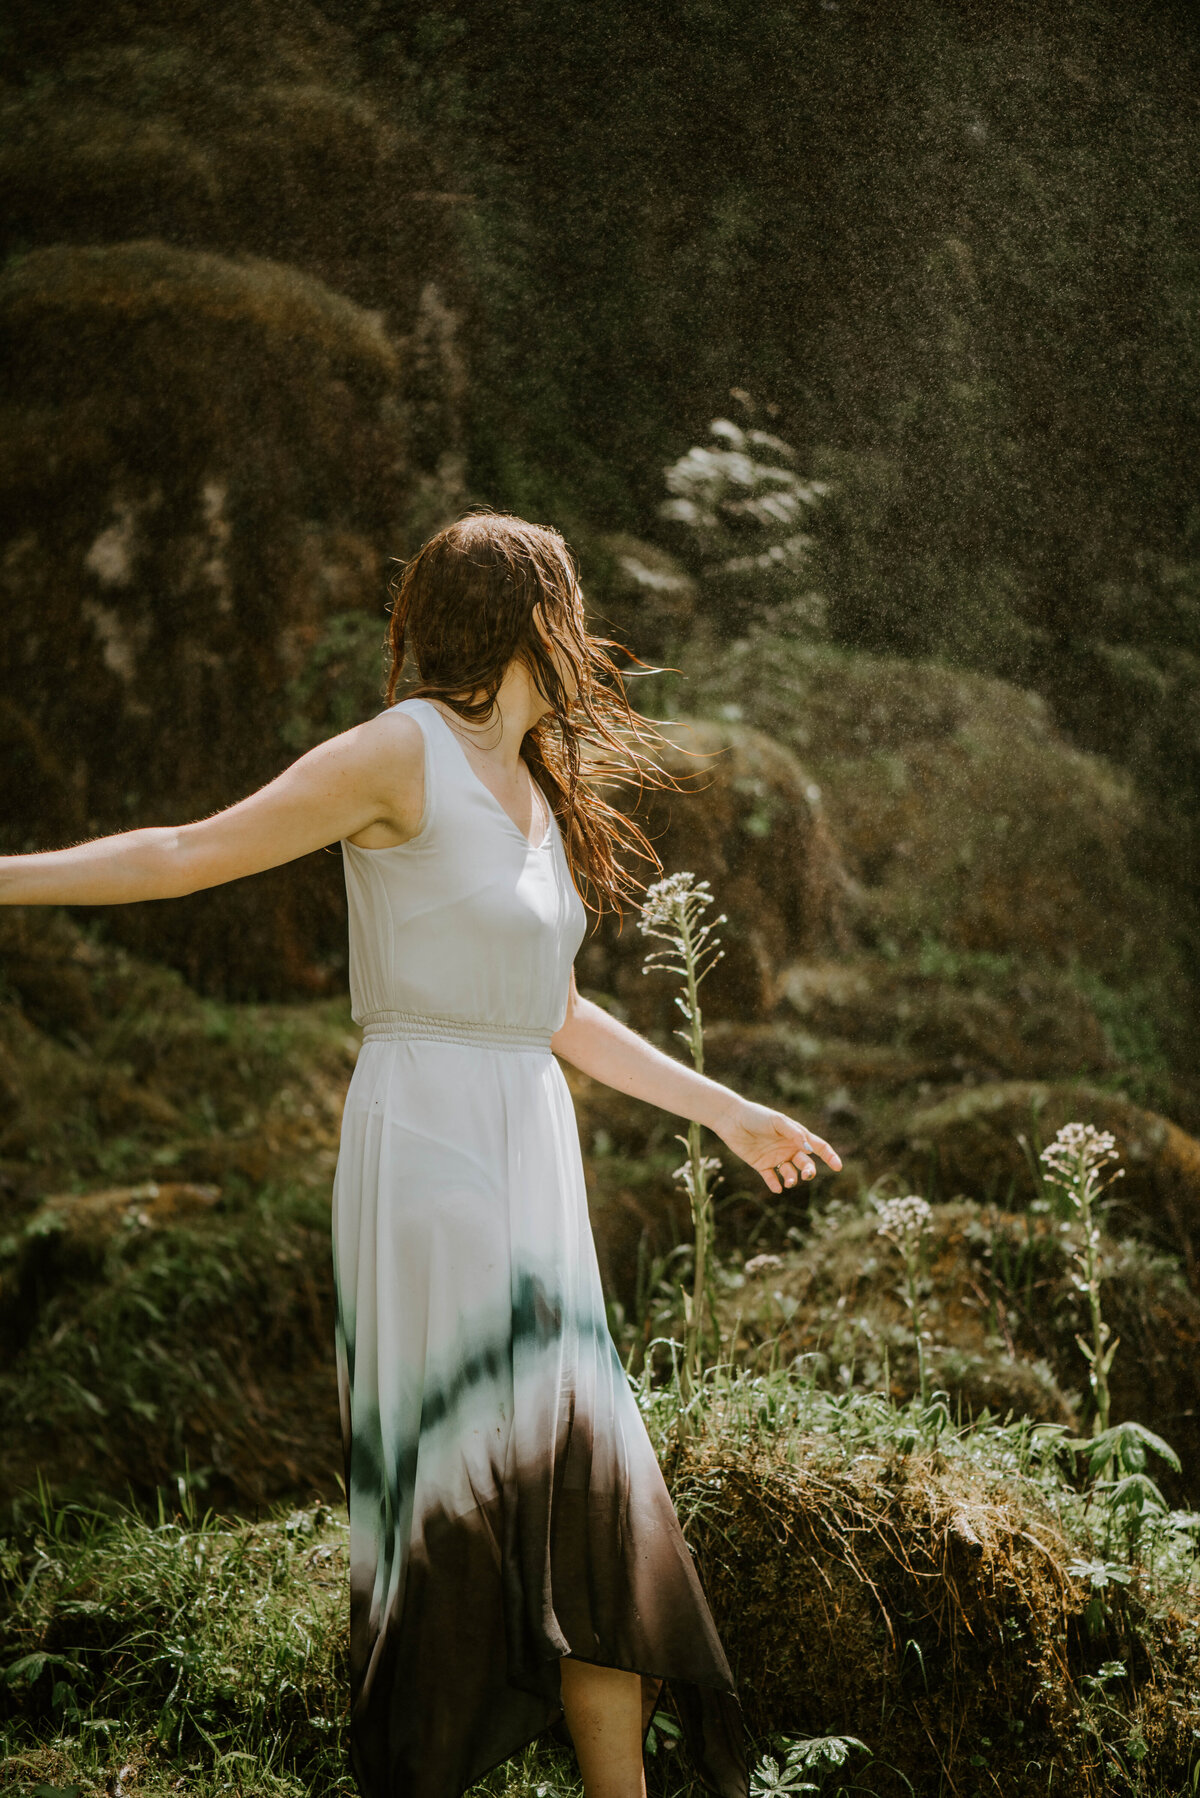 sahalie-falls-summer-oregon-photoshoot-adventure-photographer-bend-couple-forest-outfits-elopement-wedding8469